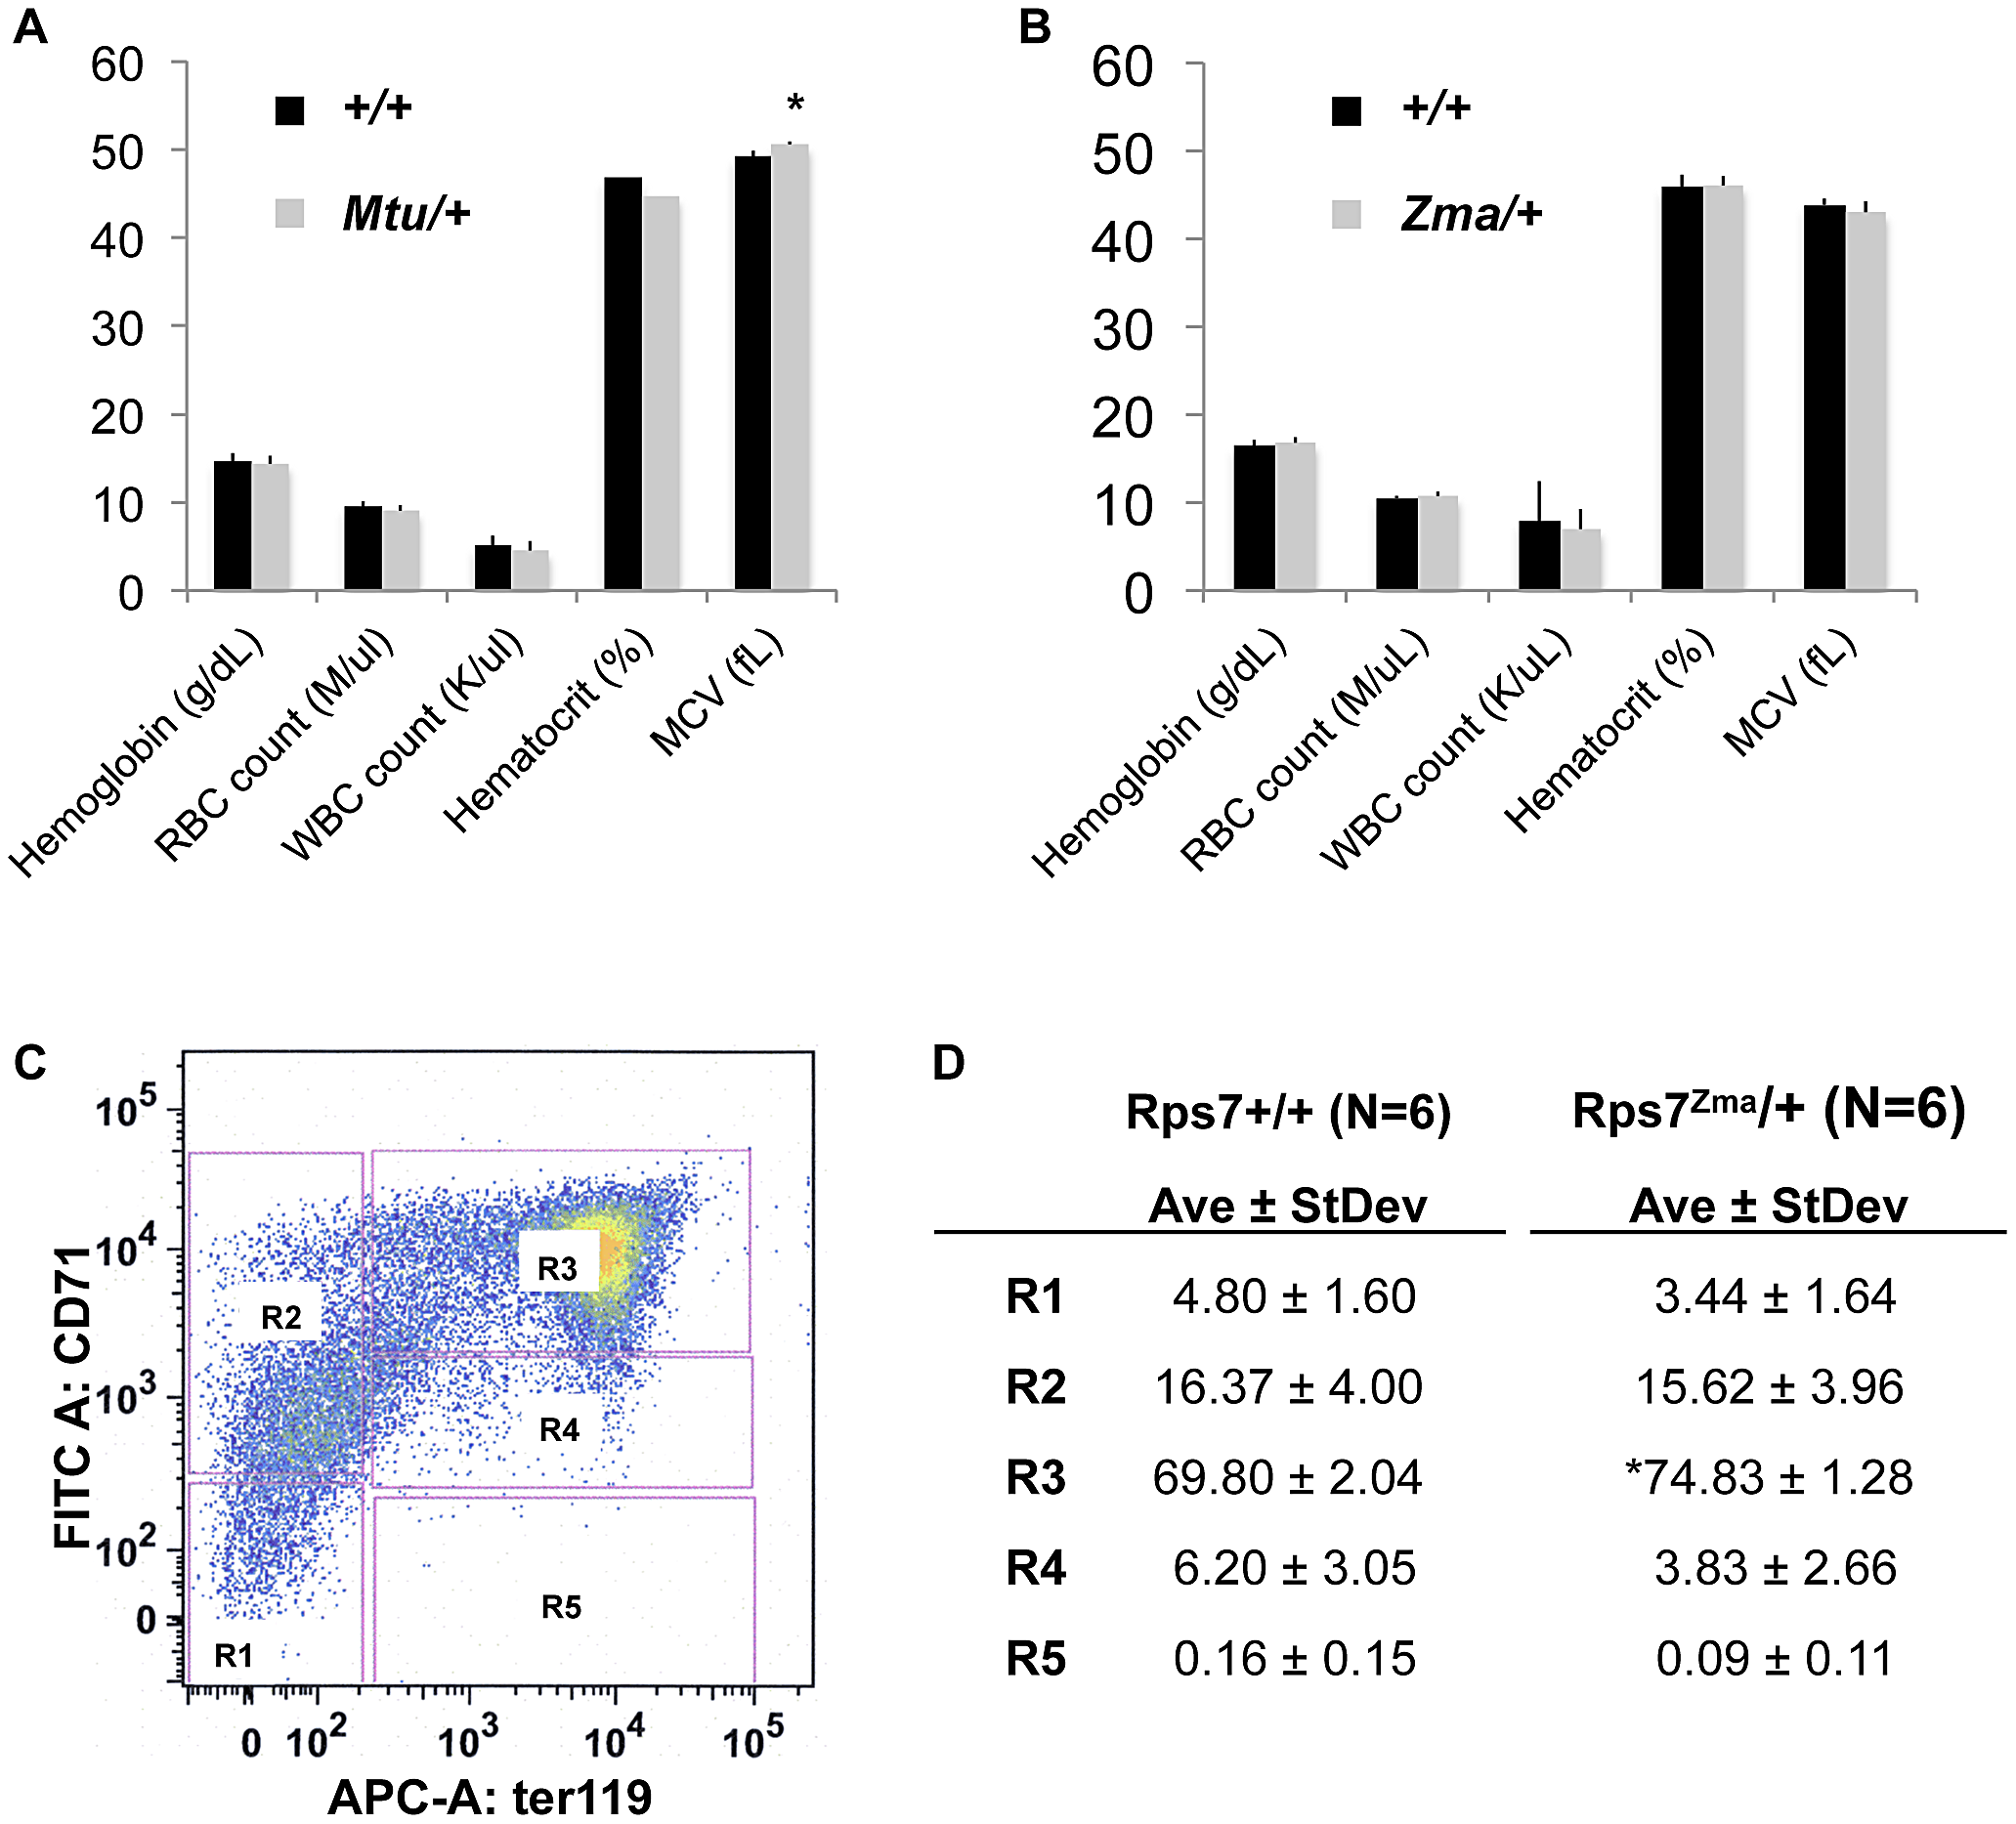 Peripheral-blood parameters appear normal with slight developmental delay in <i>Rps7<sup>Zma</sup>/+</i> fetal liver red cell precursors.